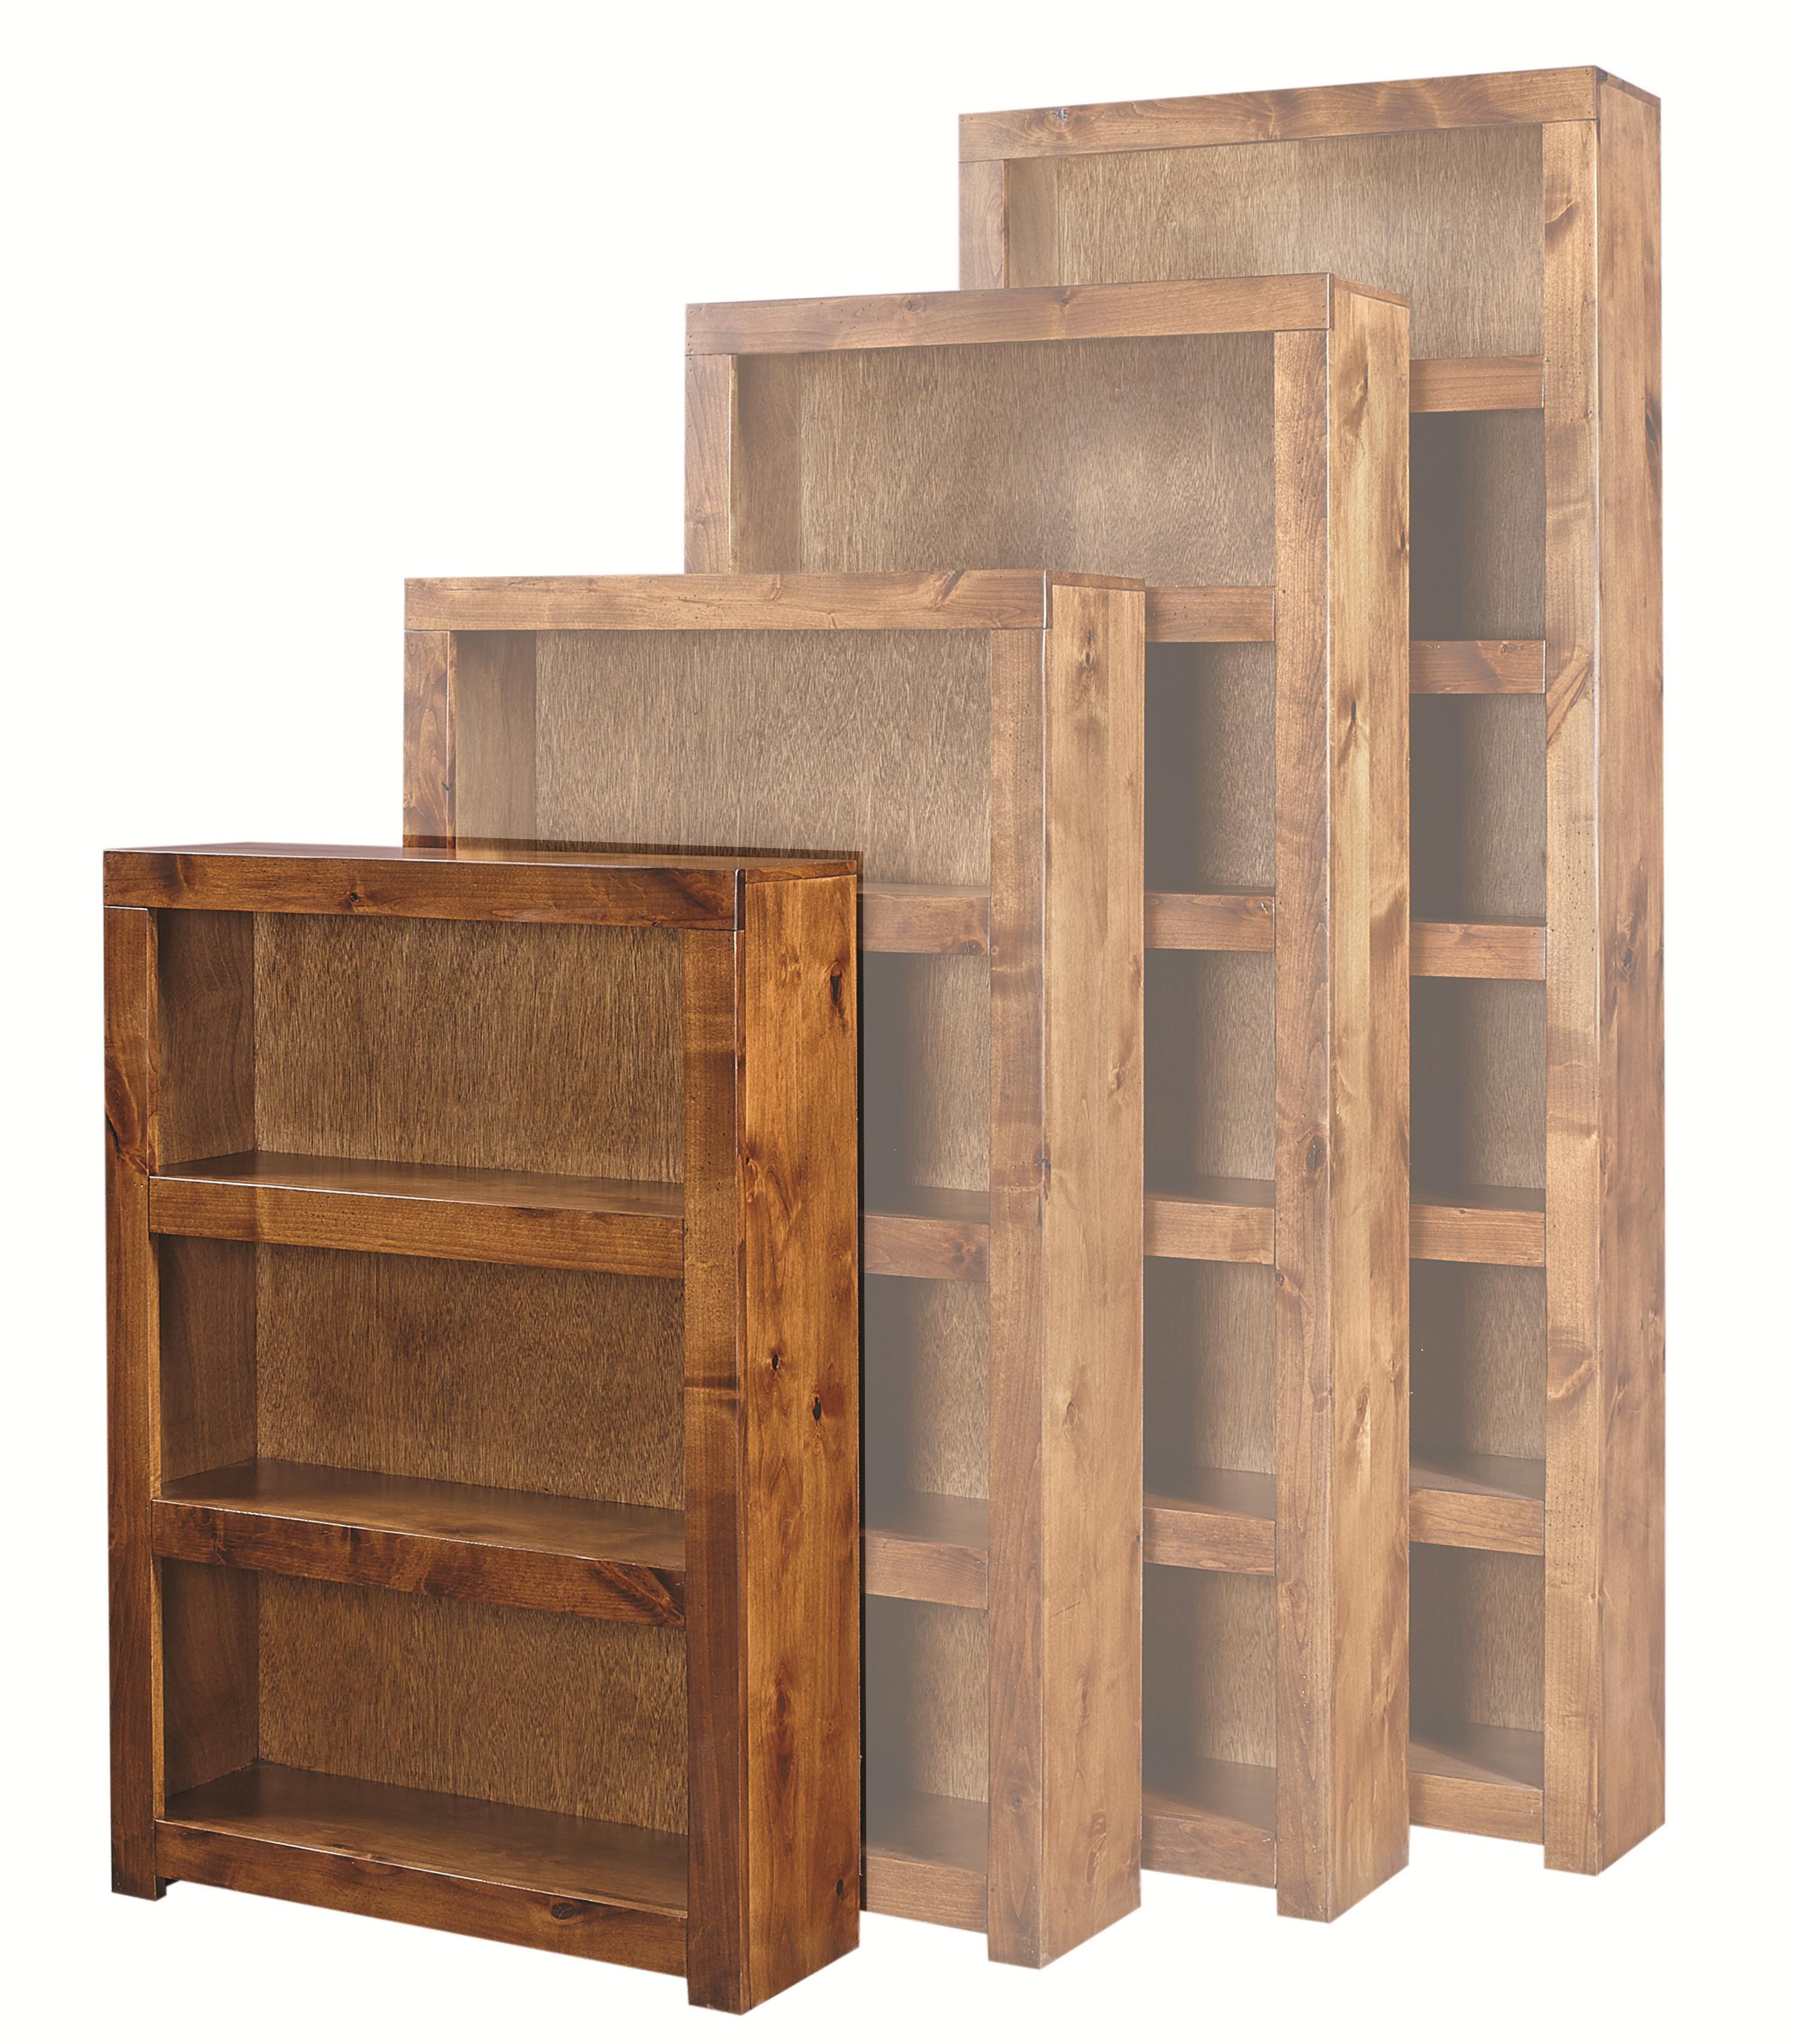 Contemporary Alder 48 Inch Bookcase by Aspenhome at Walker's Furniture